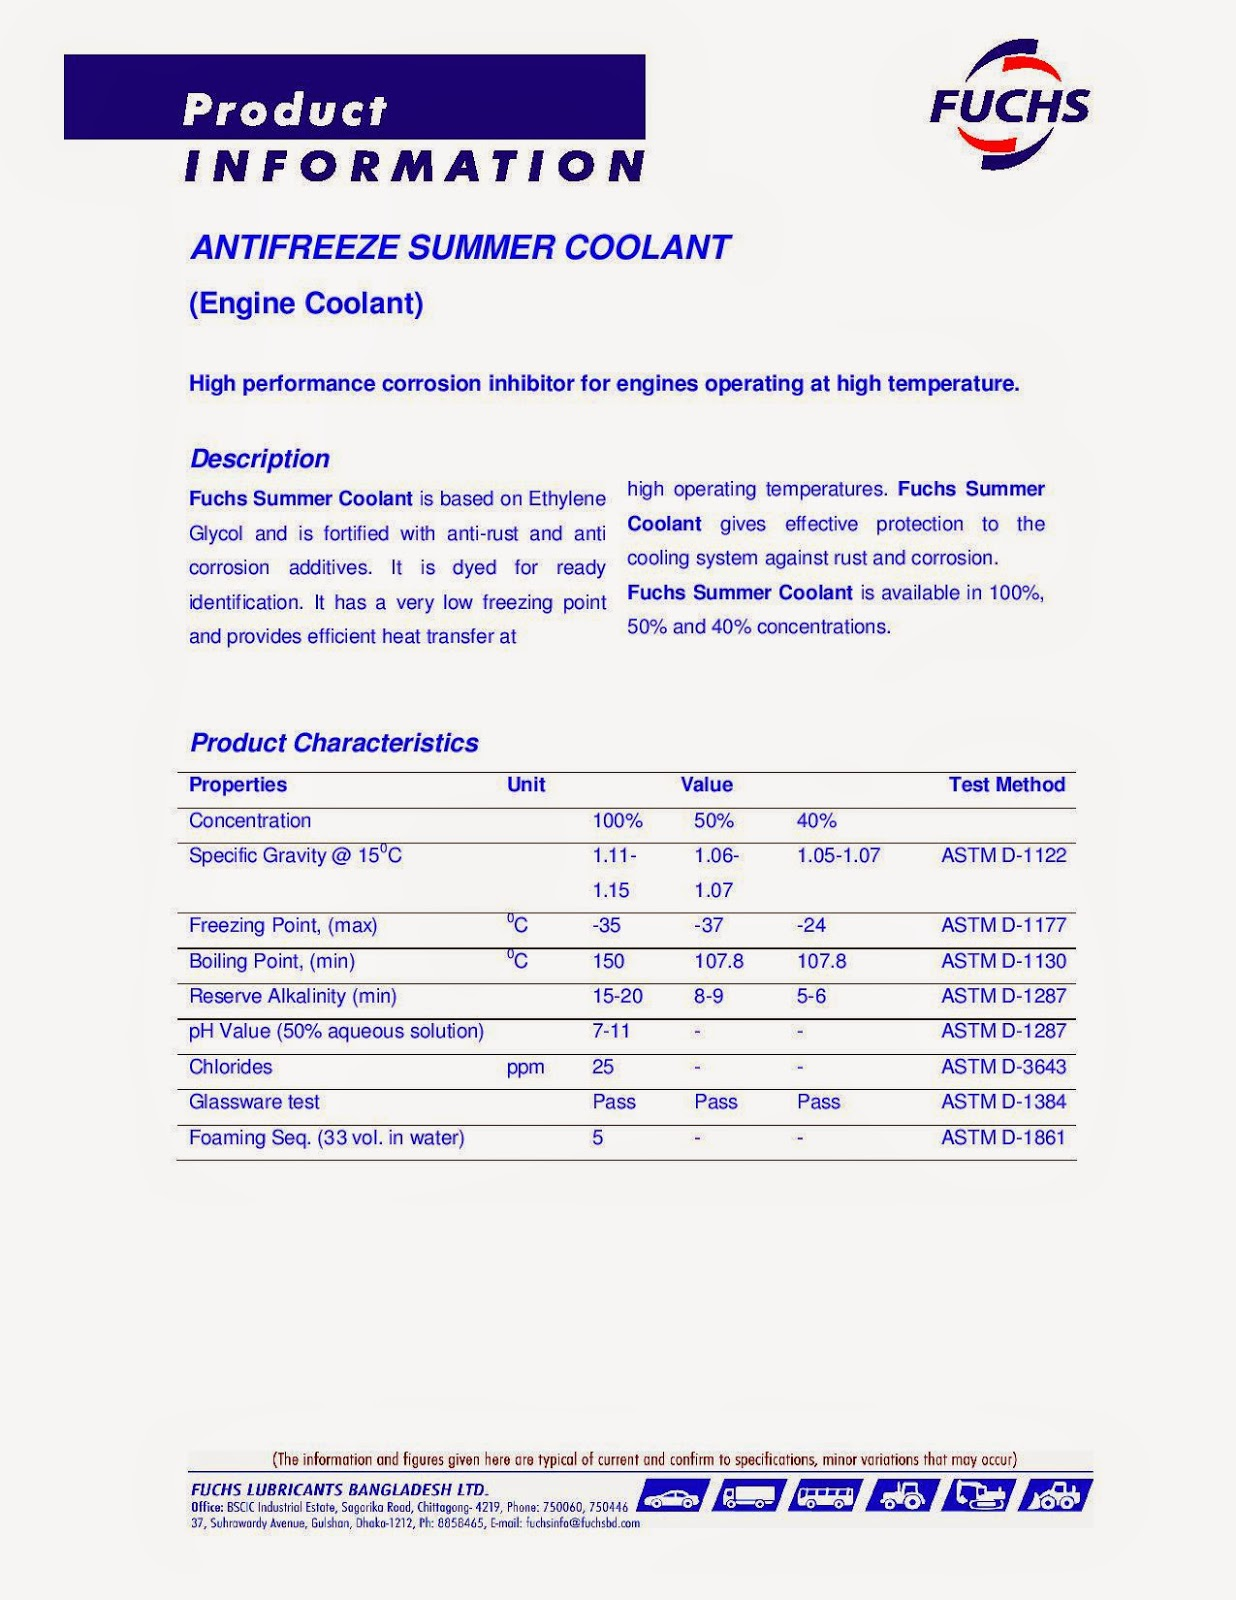 LUBRICANTS ASIA LIMITED: Antifreeze Summer Coolant (Engine